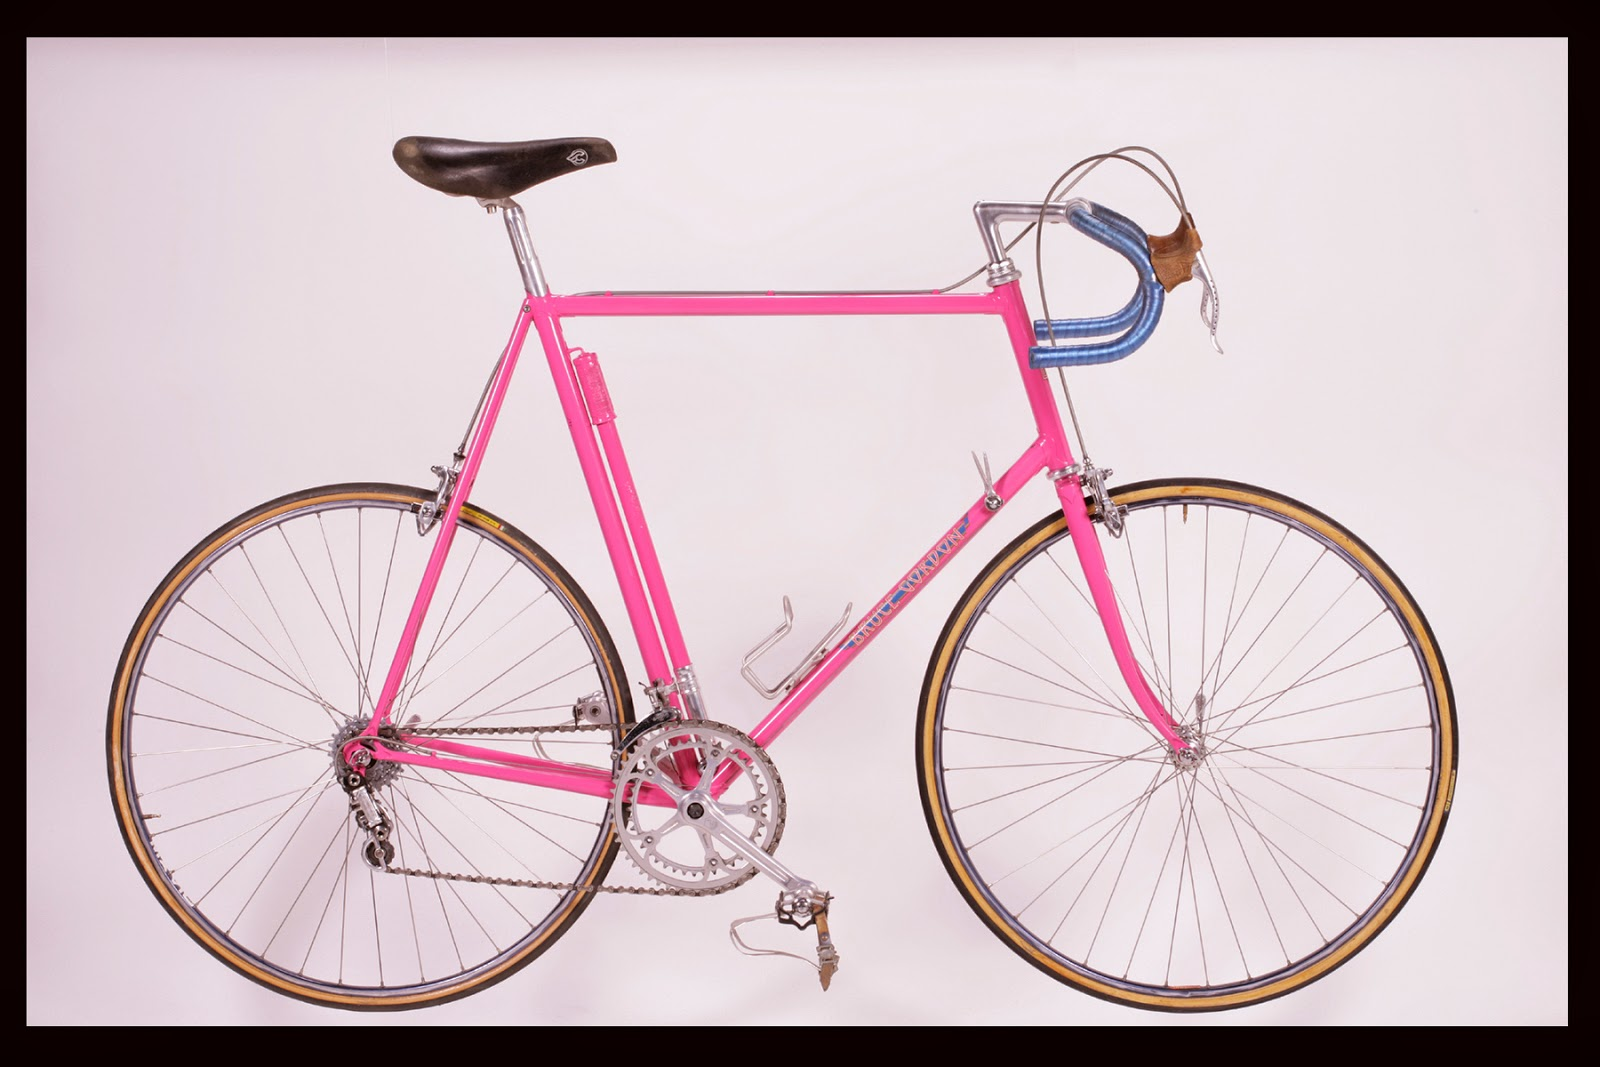 The Collection Is About 24 Bikes And 5 Frames Spanning 1974 To Present All With State Of Art Parts At Time It Was Built